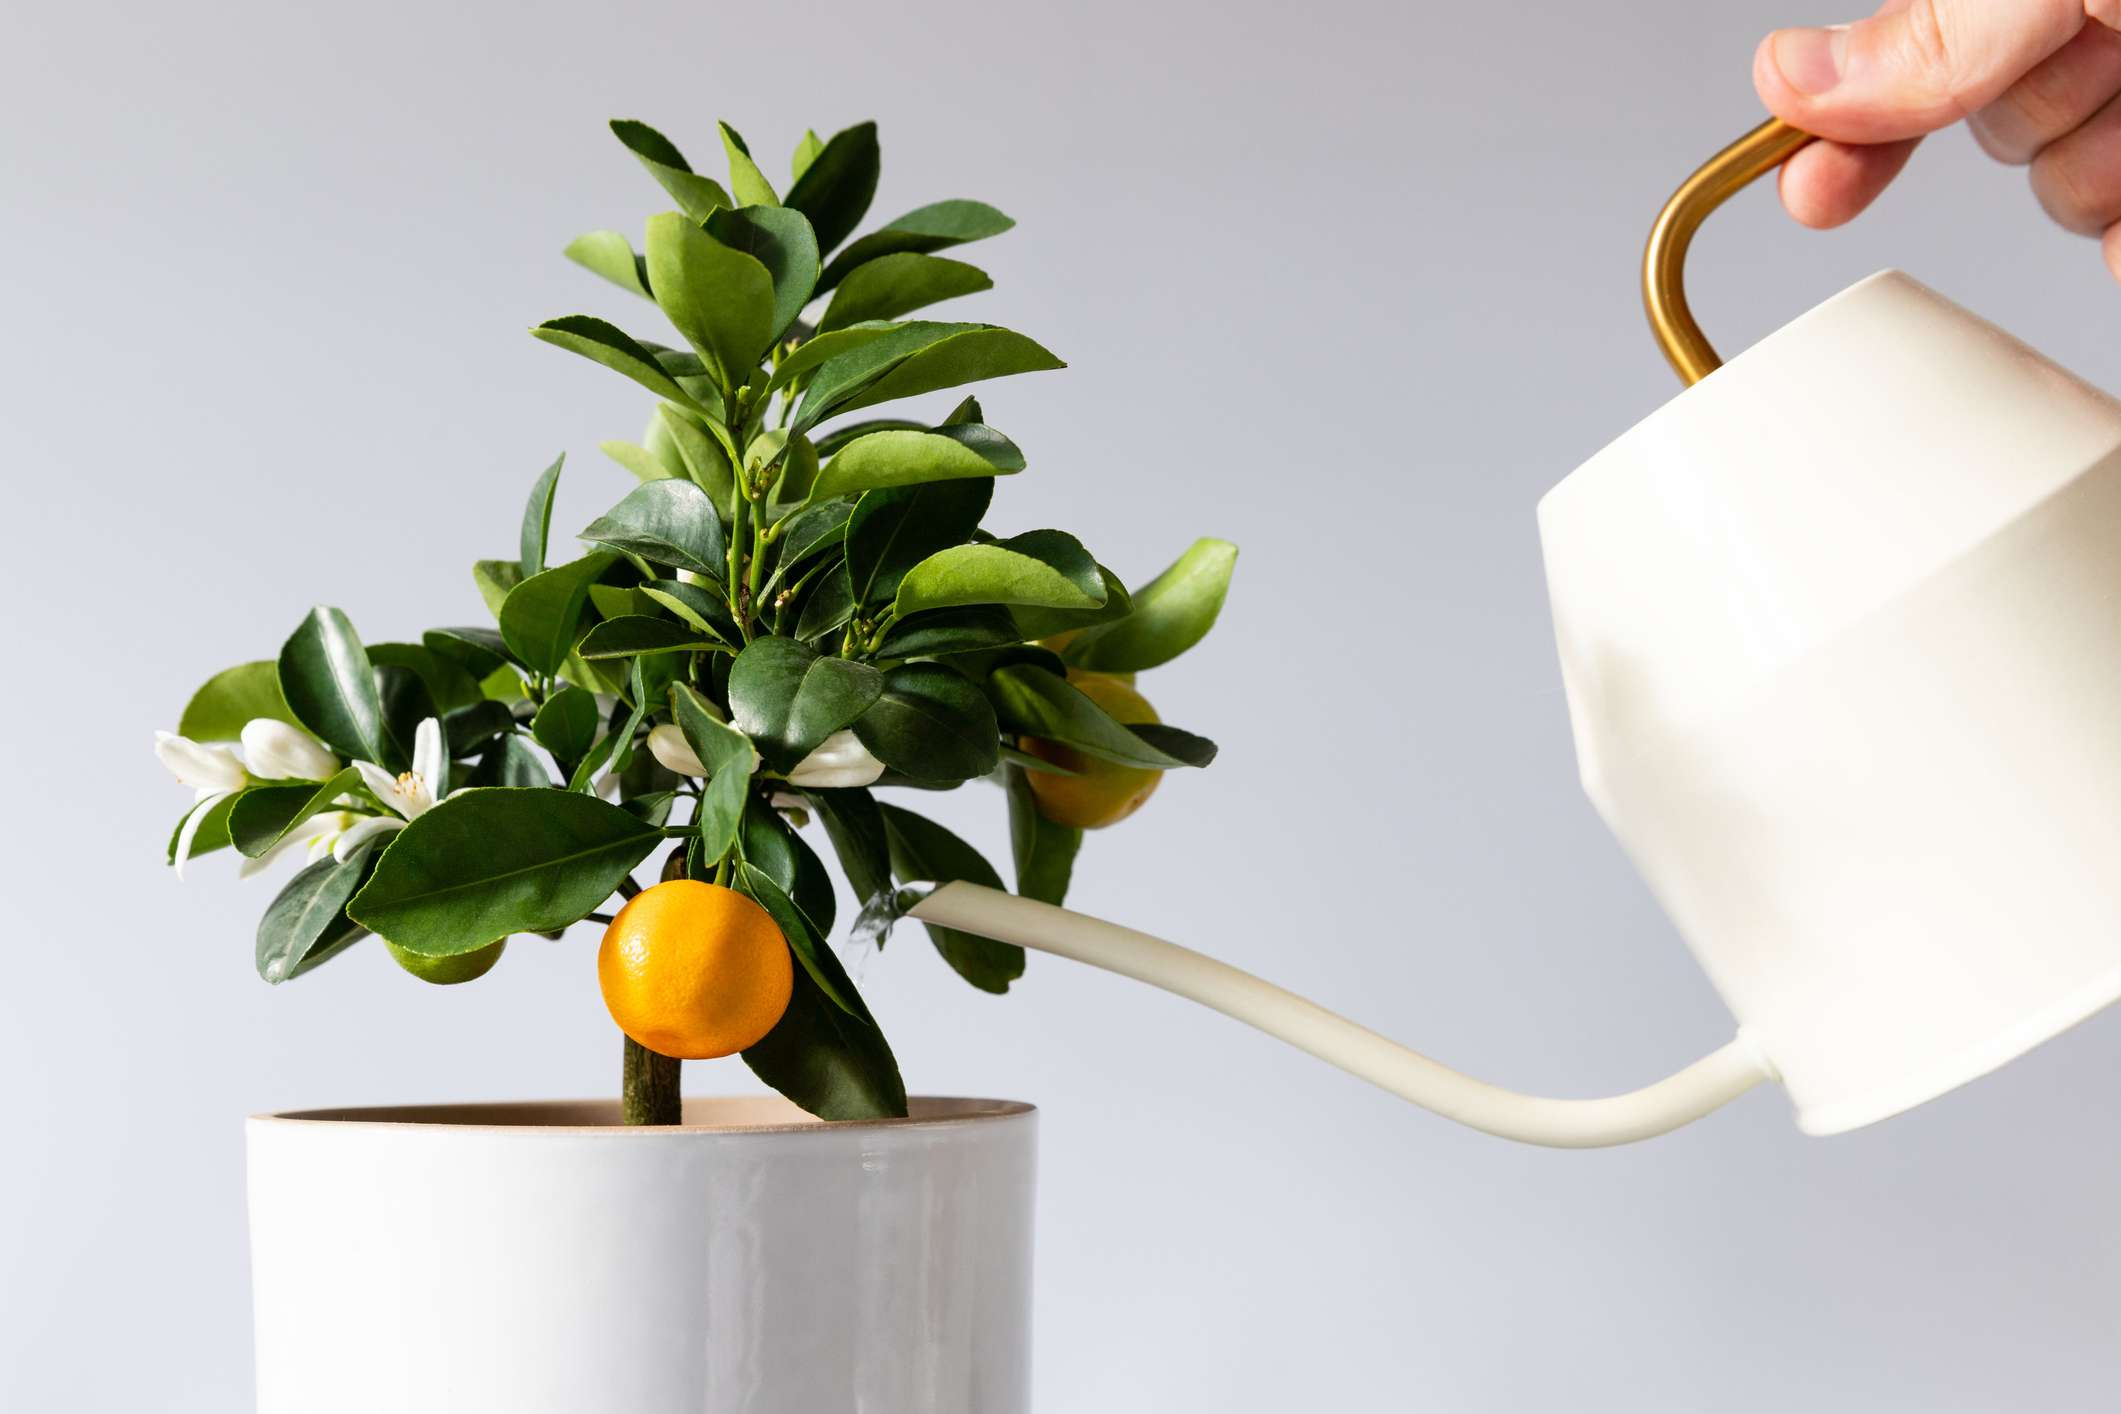 Man watering potted houseplant Citrus calamondin using a elegant white metallic watering can with long thin spout, yellow thin circular handle, white background.